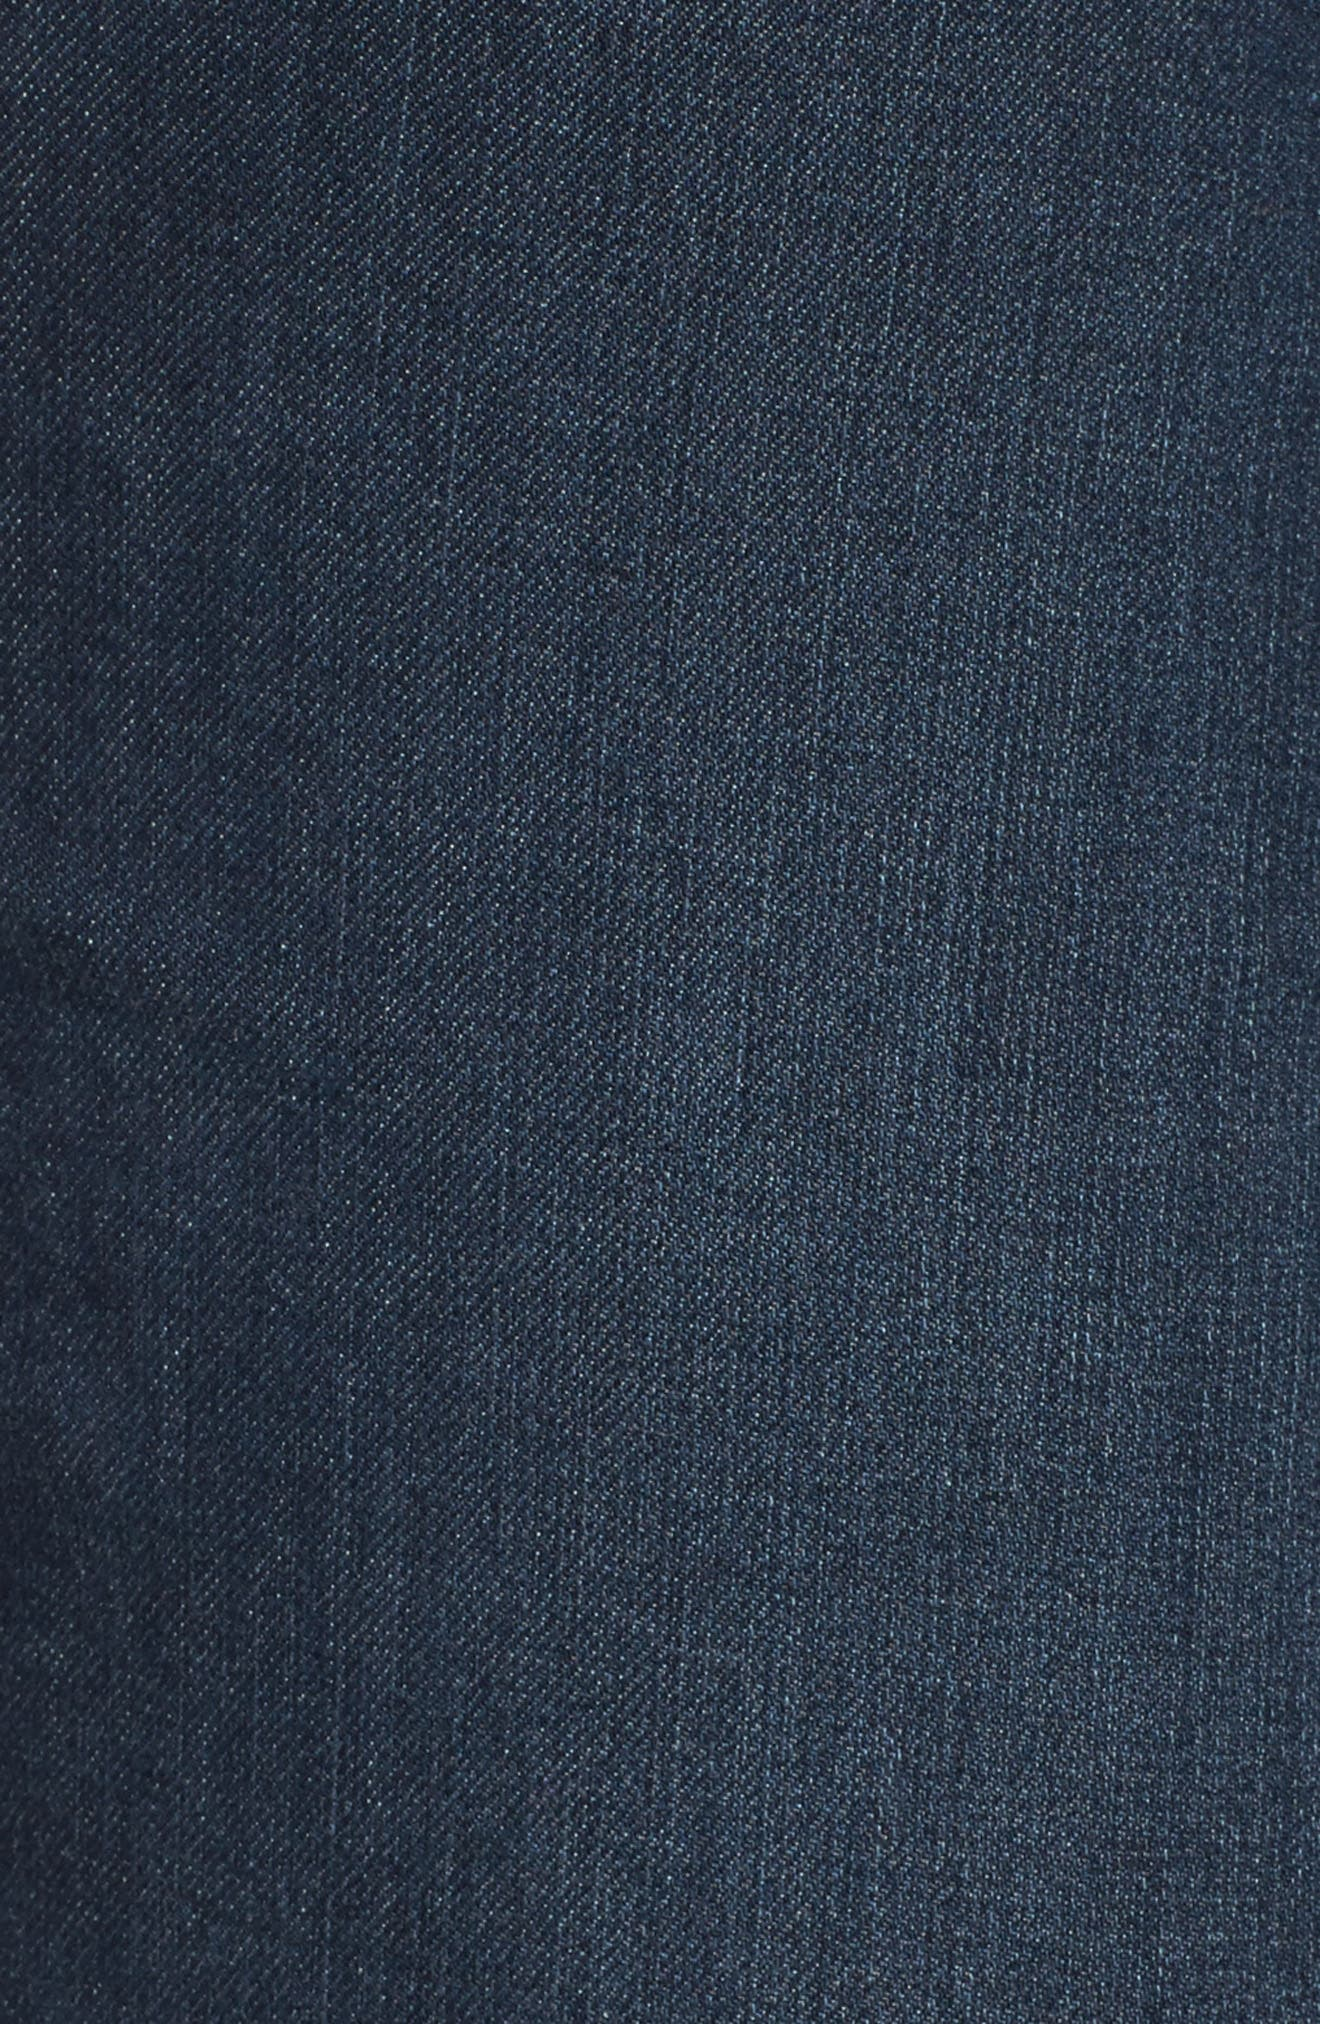 Ab-solution Itty Bitty Bootcut Jeans,                             Alternate thumbnail 6, color,                             420